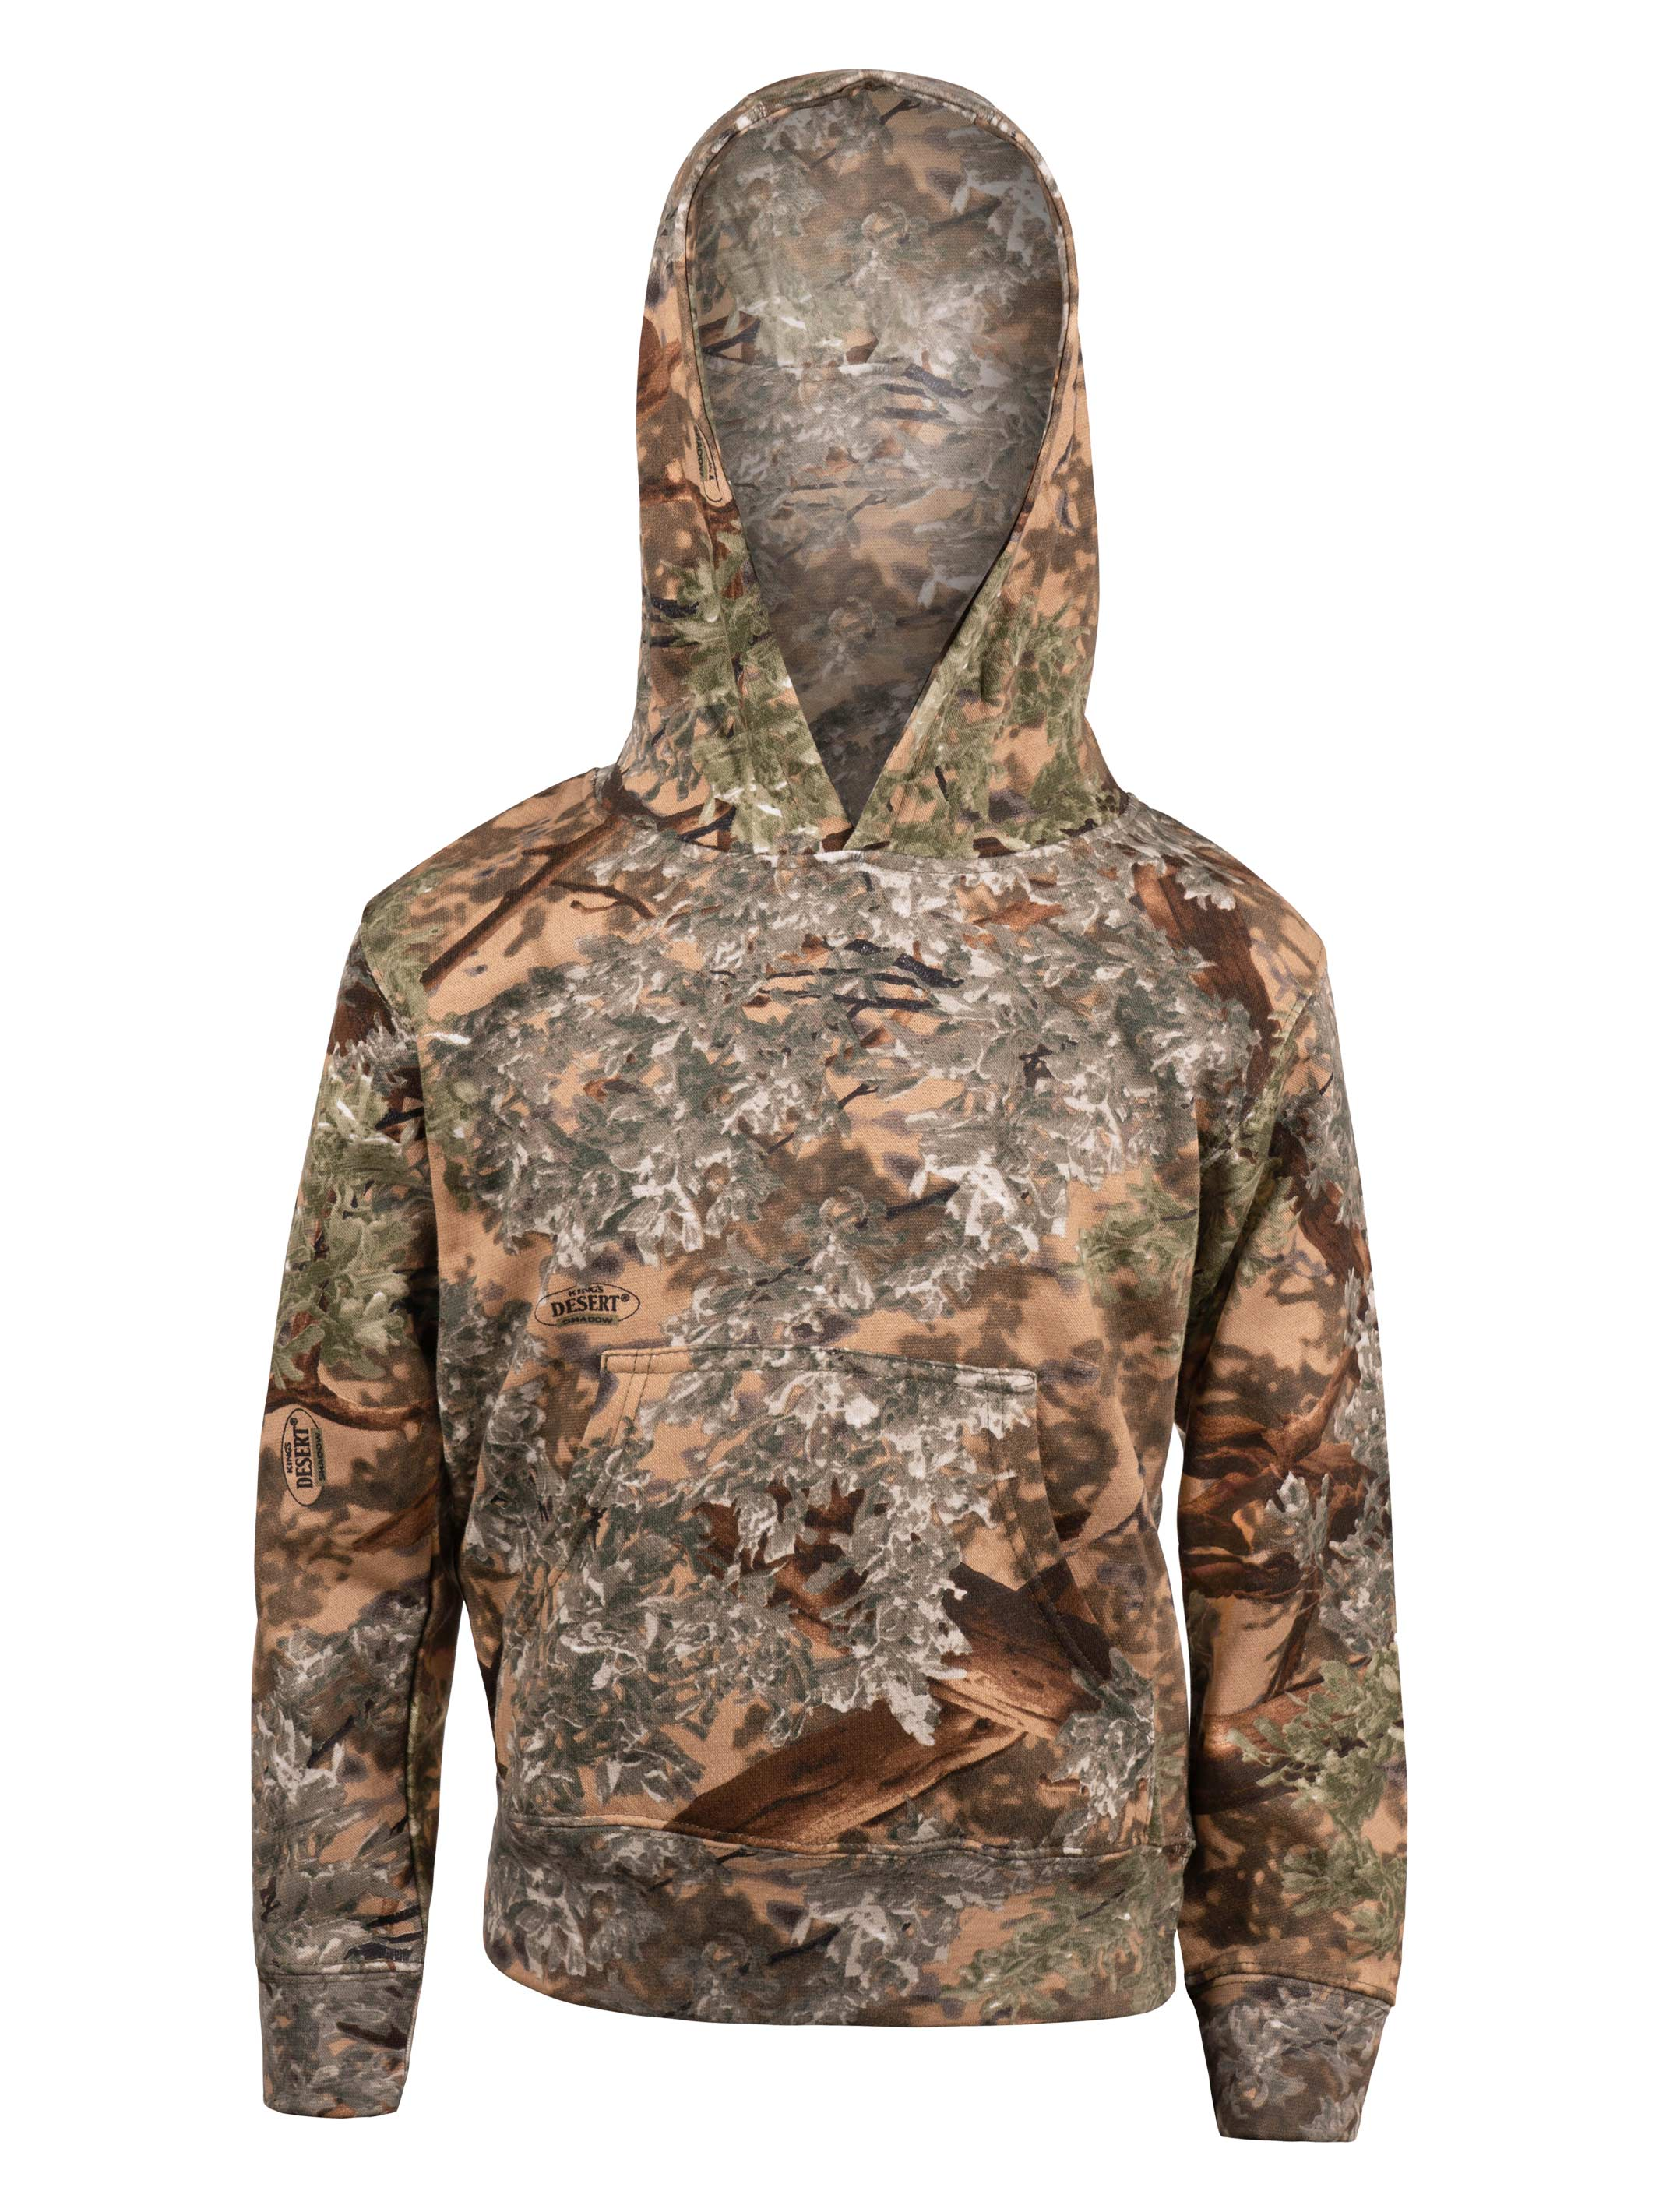 Kings Camo Kids Cotton Hoodie Desert Shadow w// Elk Black and Pink Logo Camouflage Youth